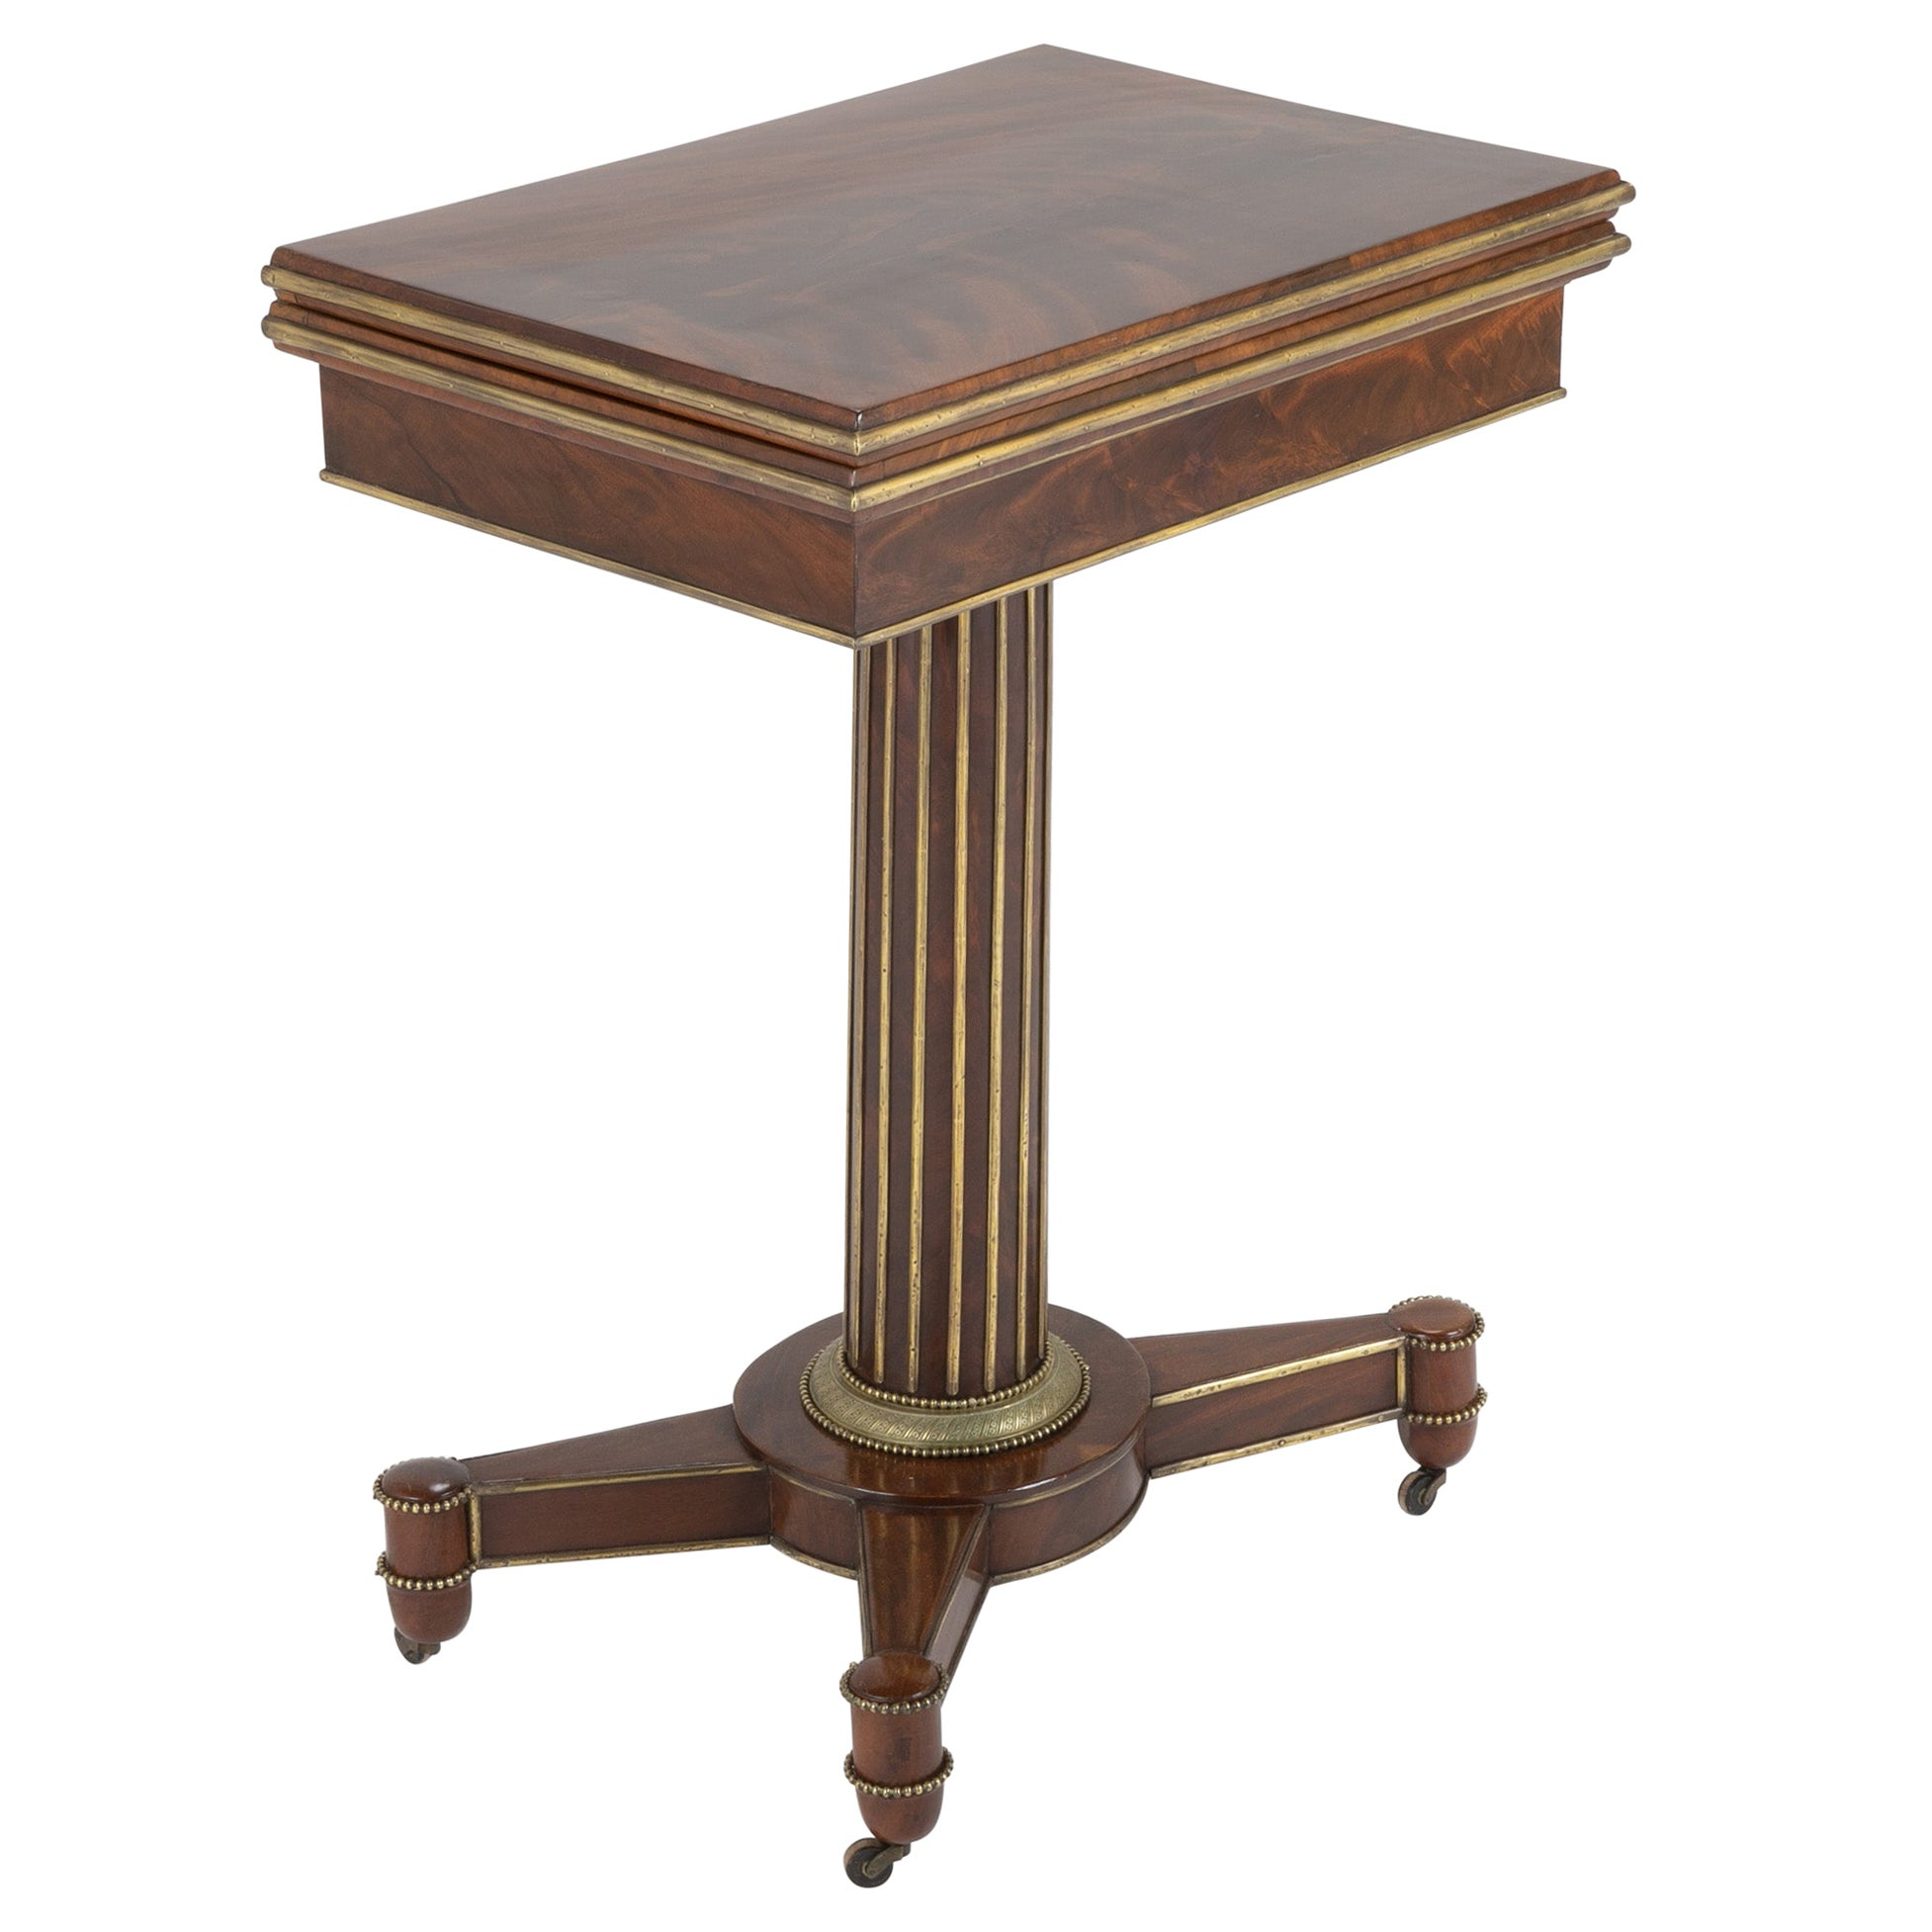 Baltic Mahogany and Brass Mounted Games Table